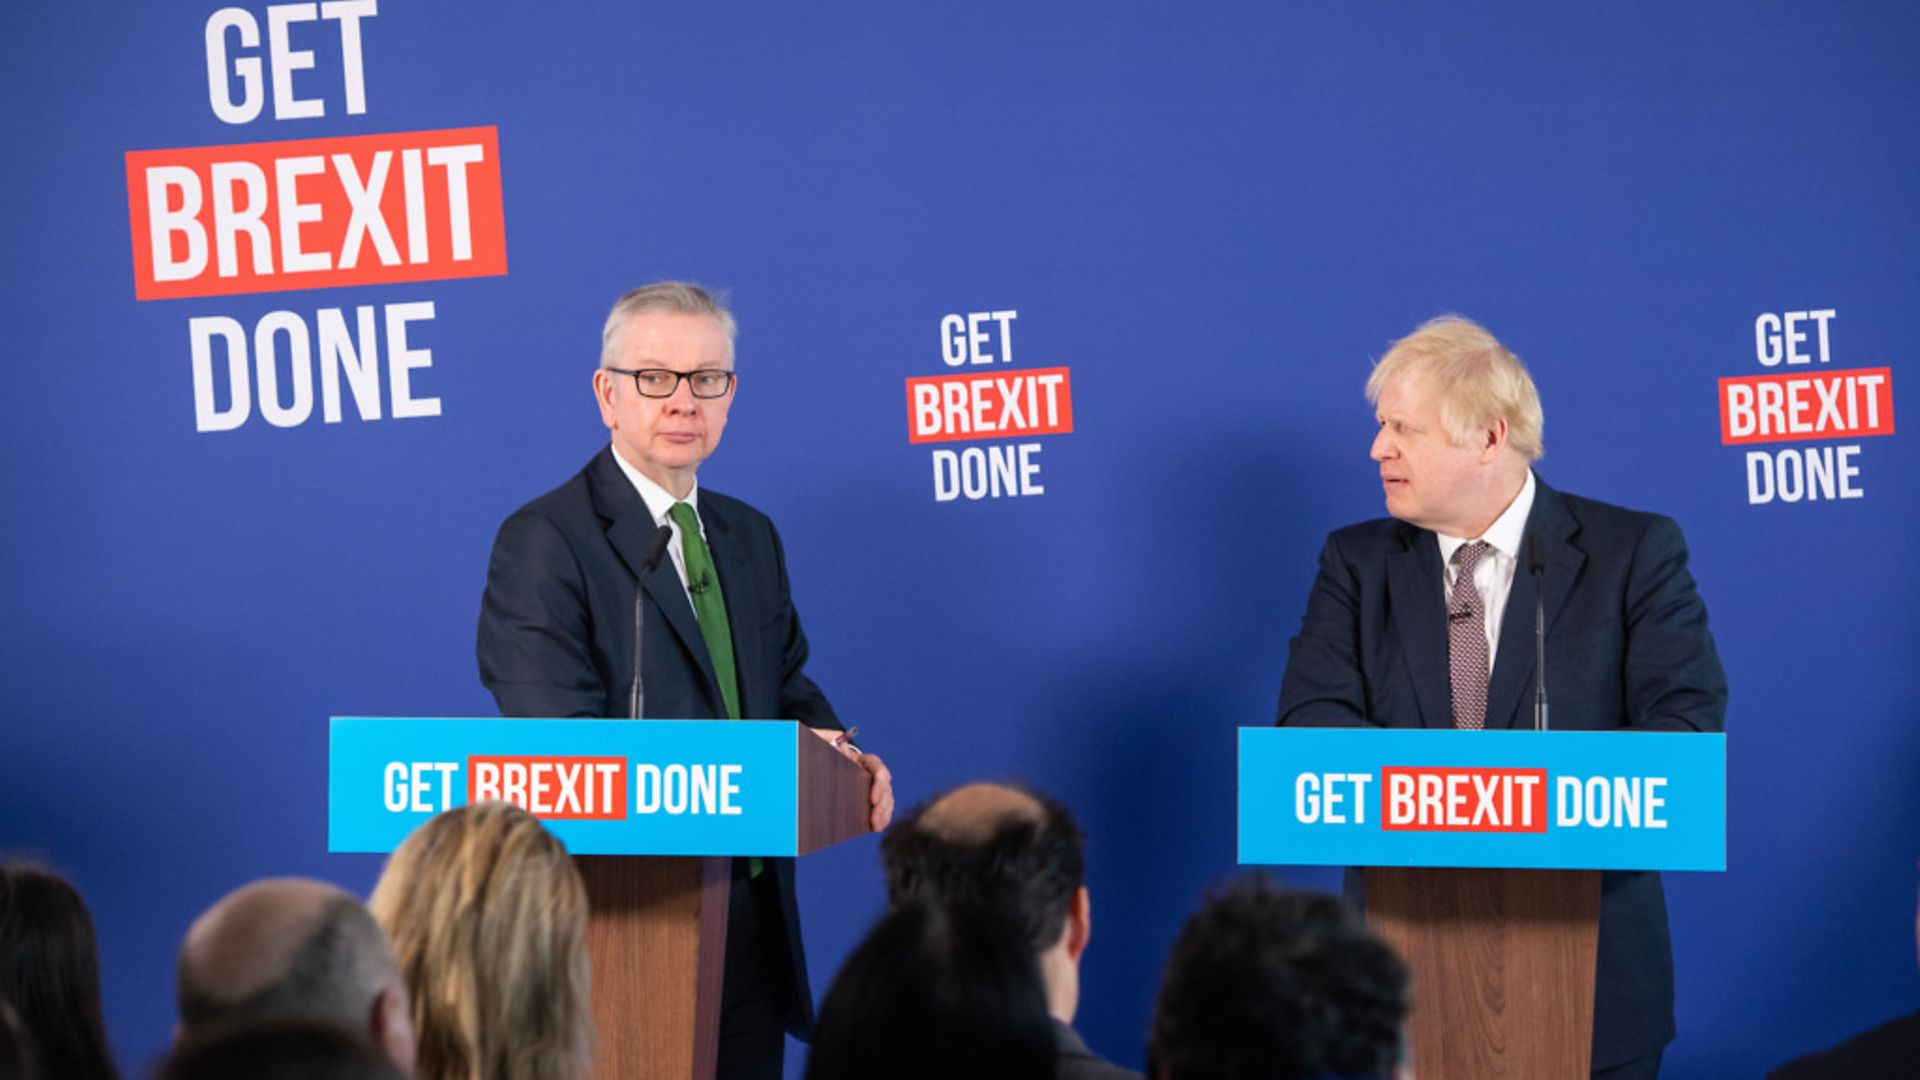 Prime Minister Boris Johnson and Chancellor of the Duchy of Lancaster, Michael Gove (left) speaking at a press conference in Millbank Tower. - Credit: PA